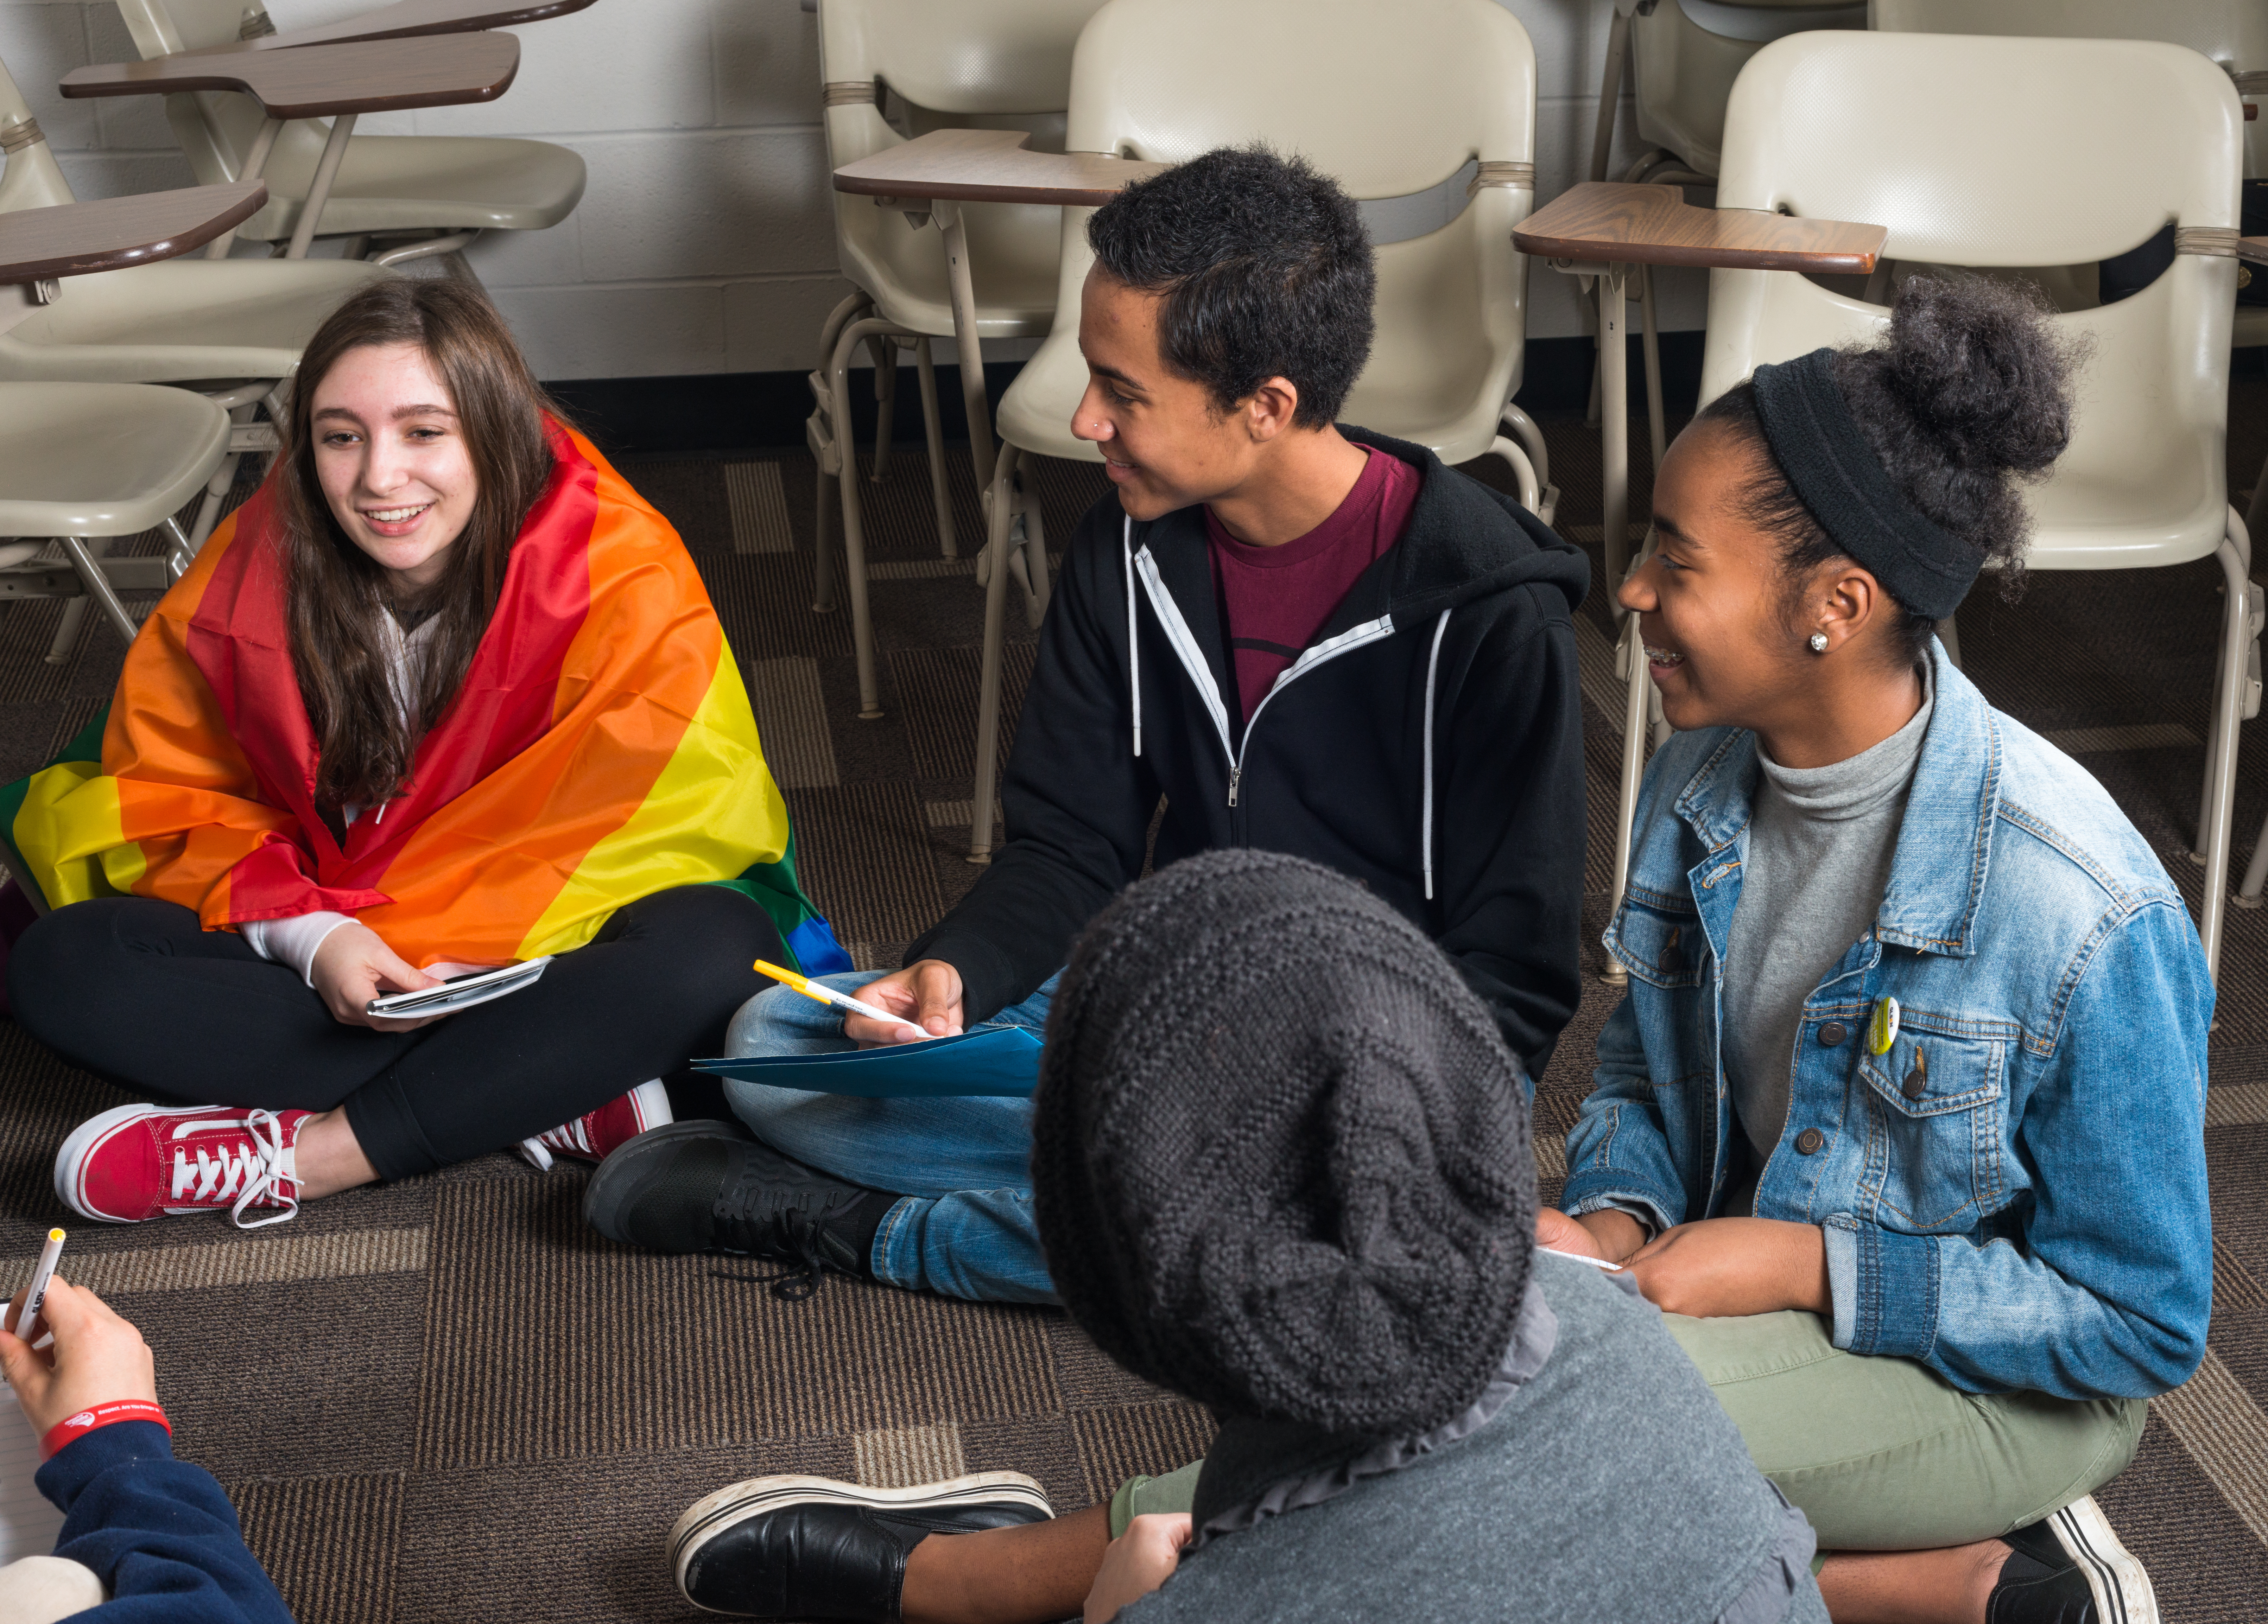 A group of students sit in a circle on the floor of a classroom with the desks pushed aside. They smile and hold notebooks. The first student on the left is wrapped in a rainbow flag.